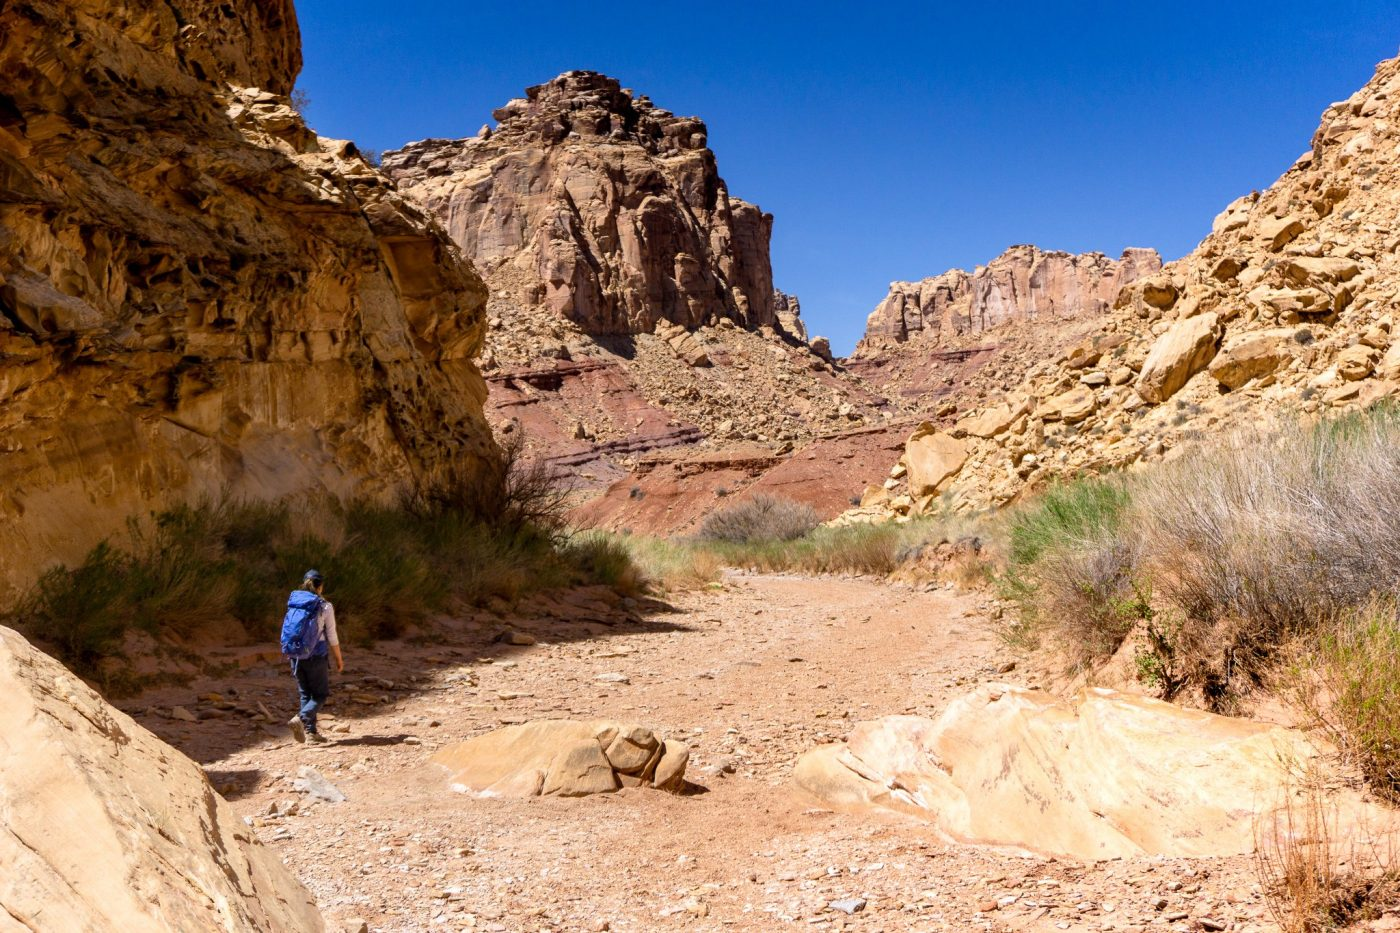 Chute canyon scrambling